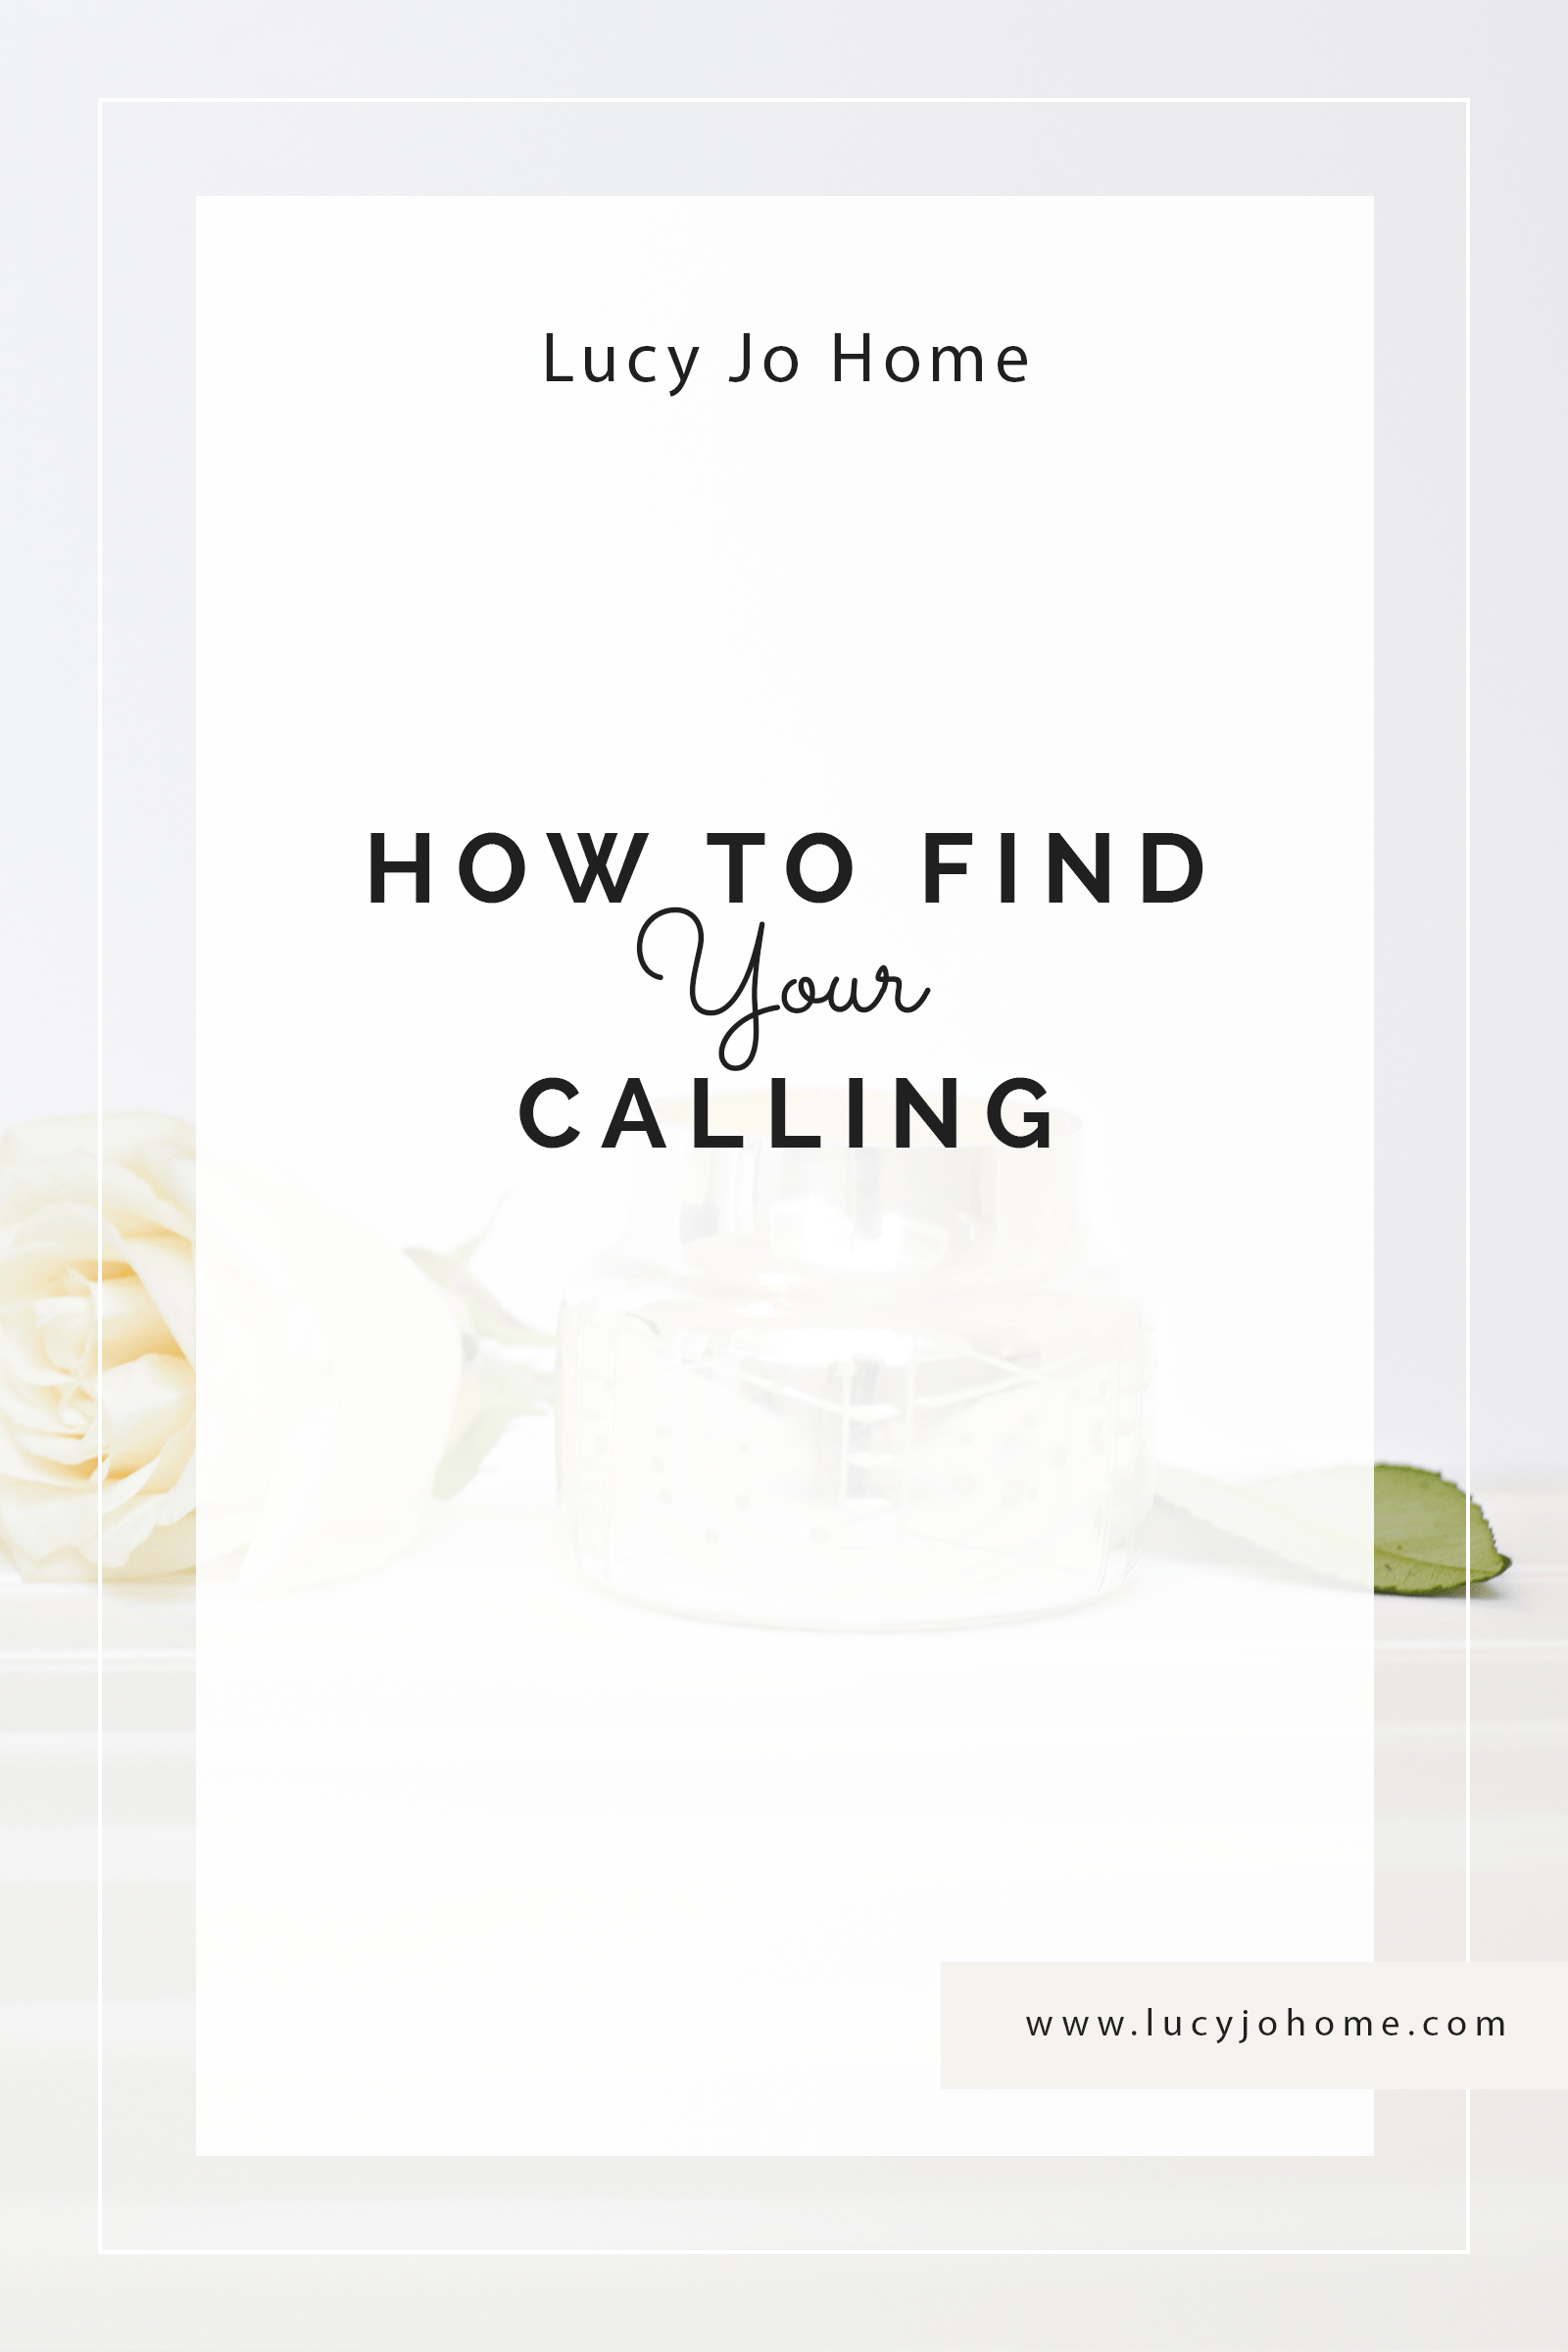 How to Find Your Calling